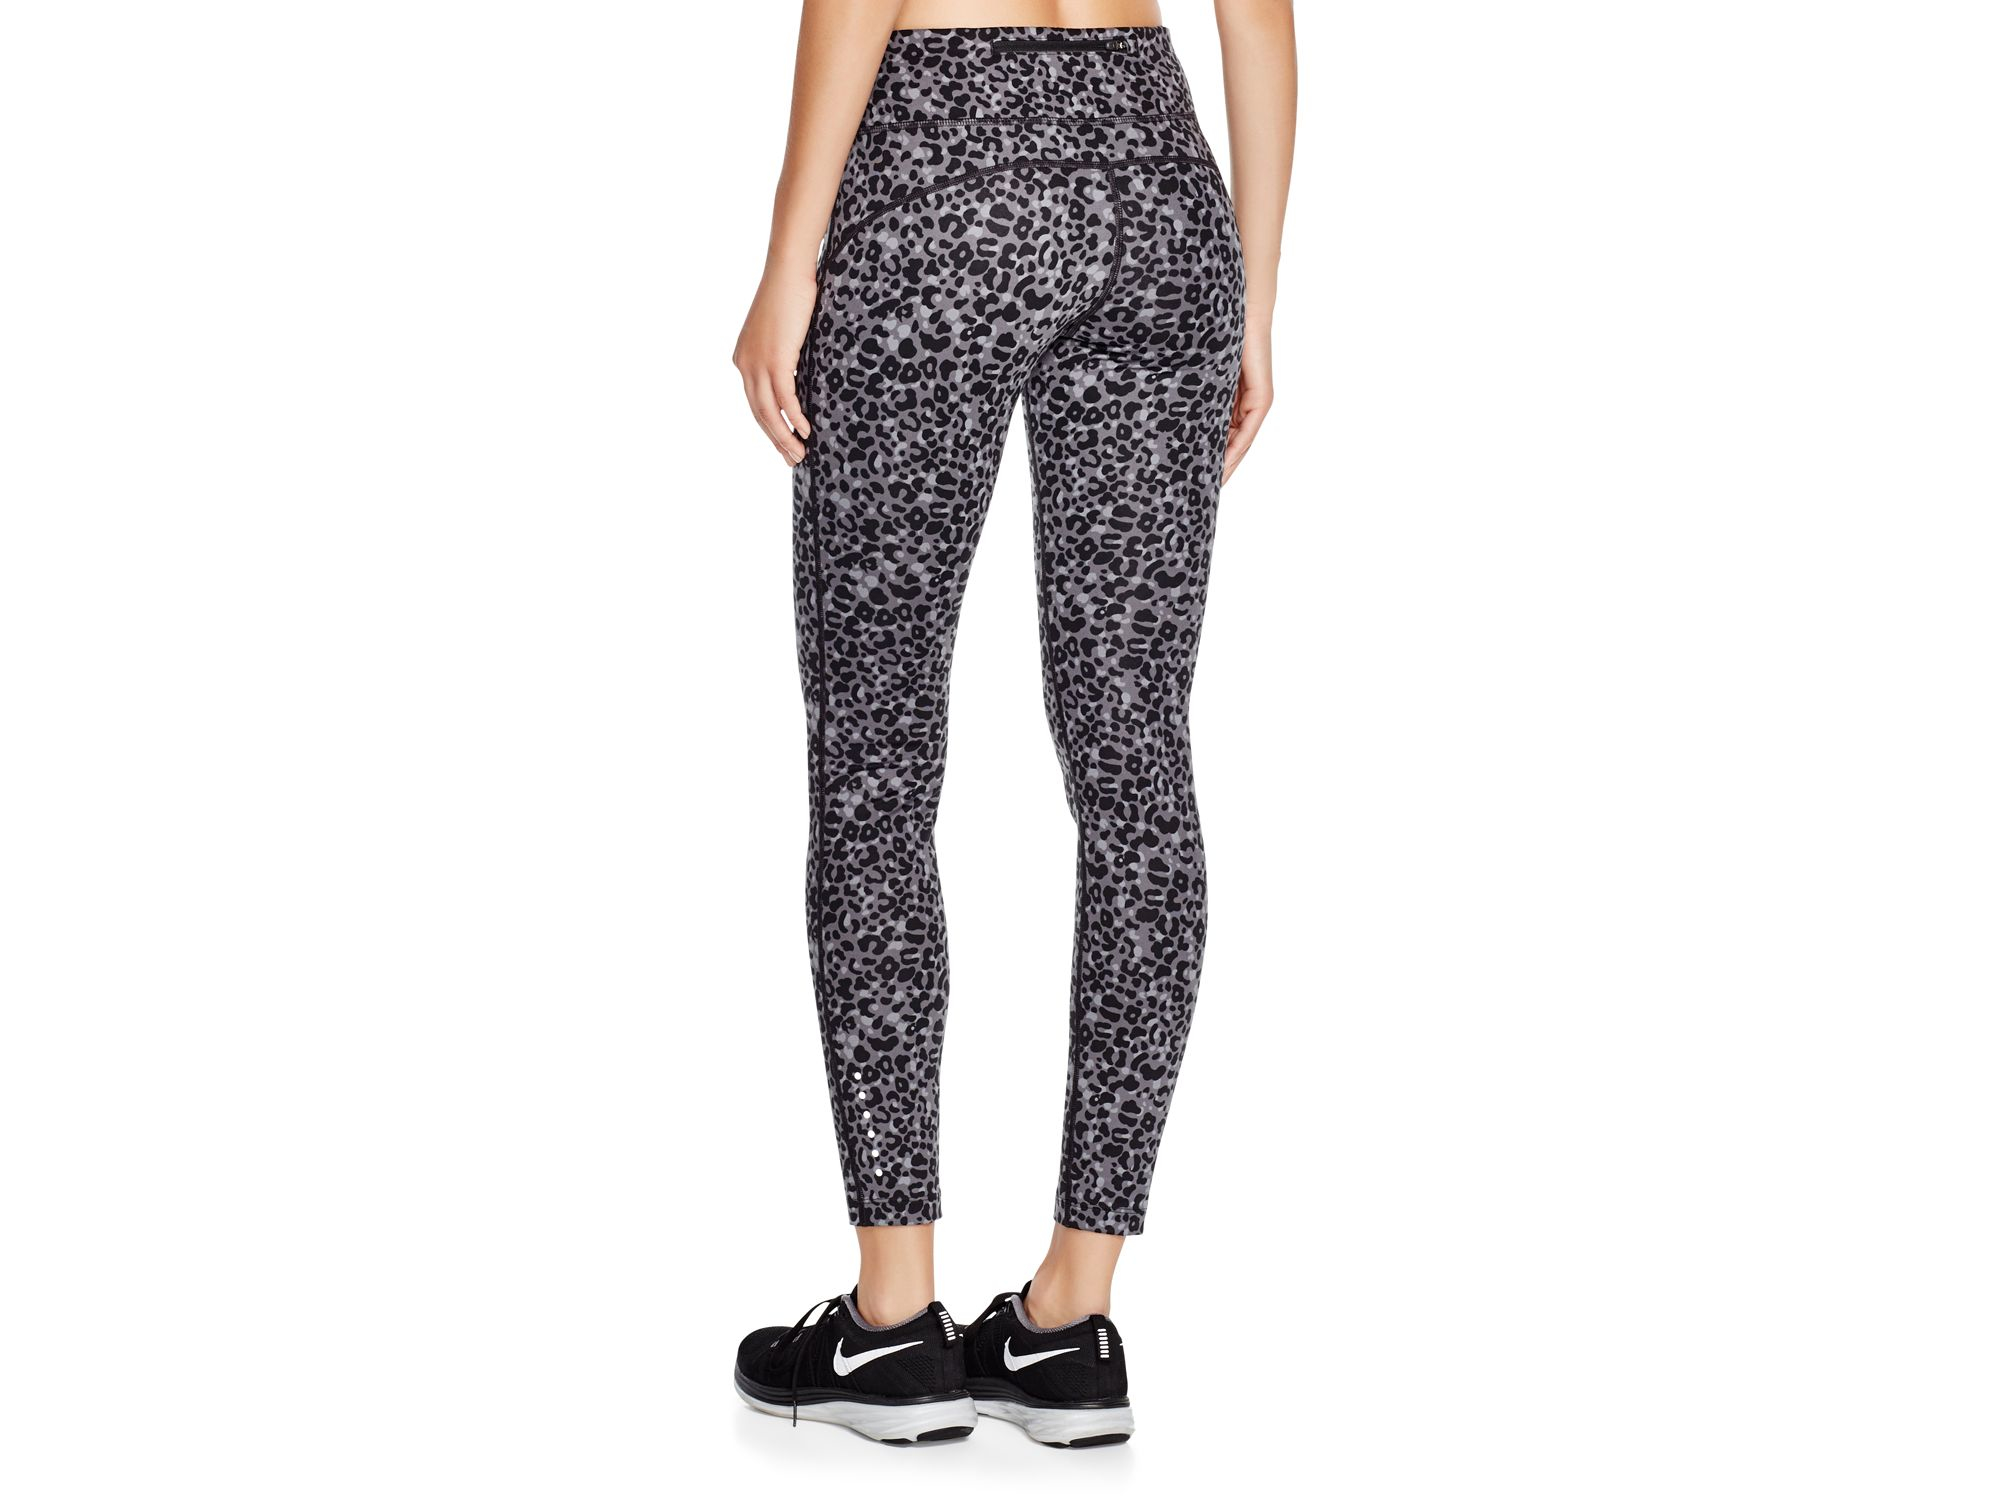 nouvelle r duction de l quilibre - Nike Lotus Epic Run Tights in Black | Lyst